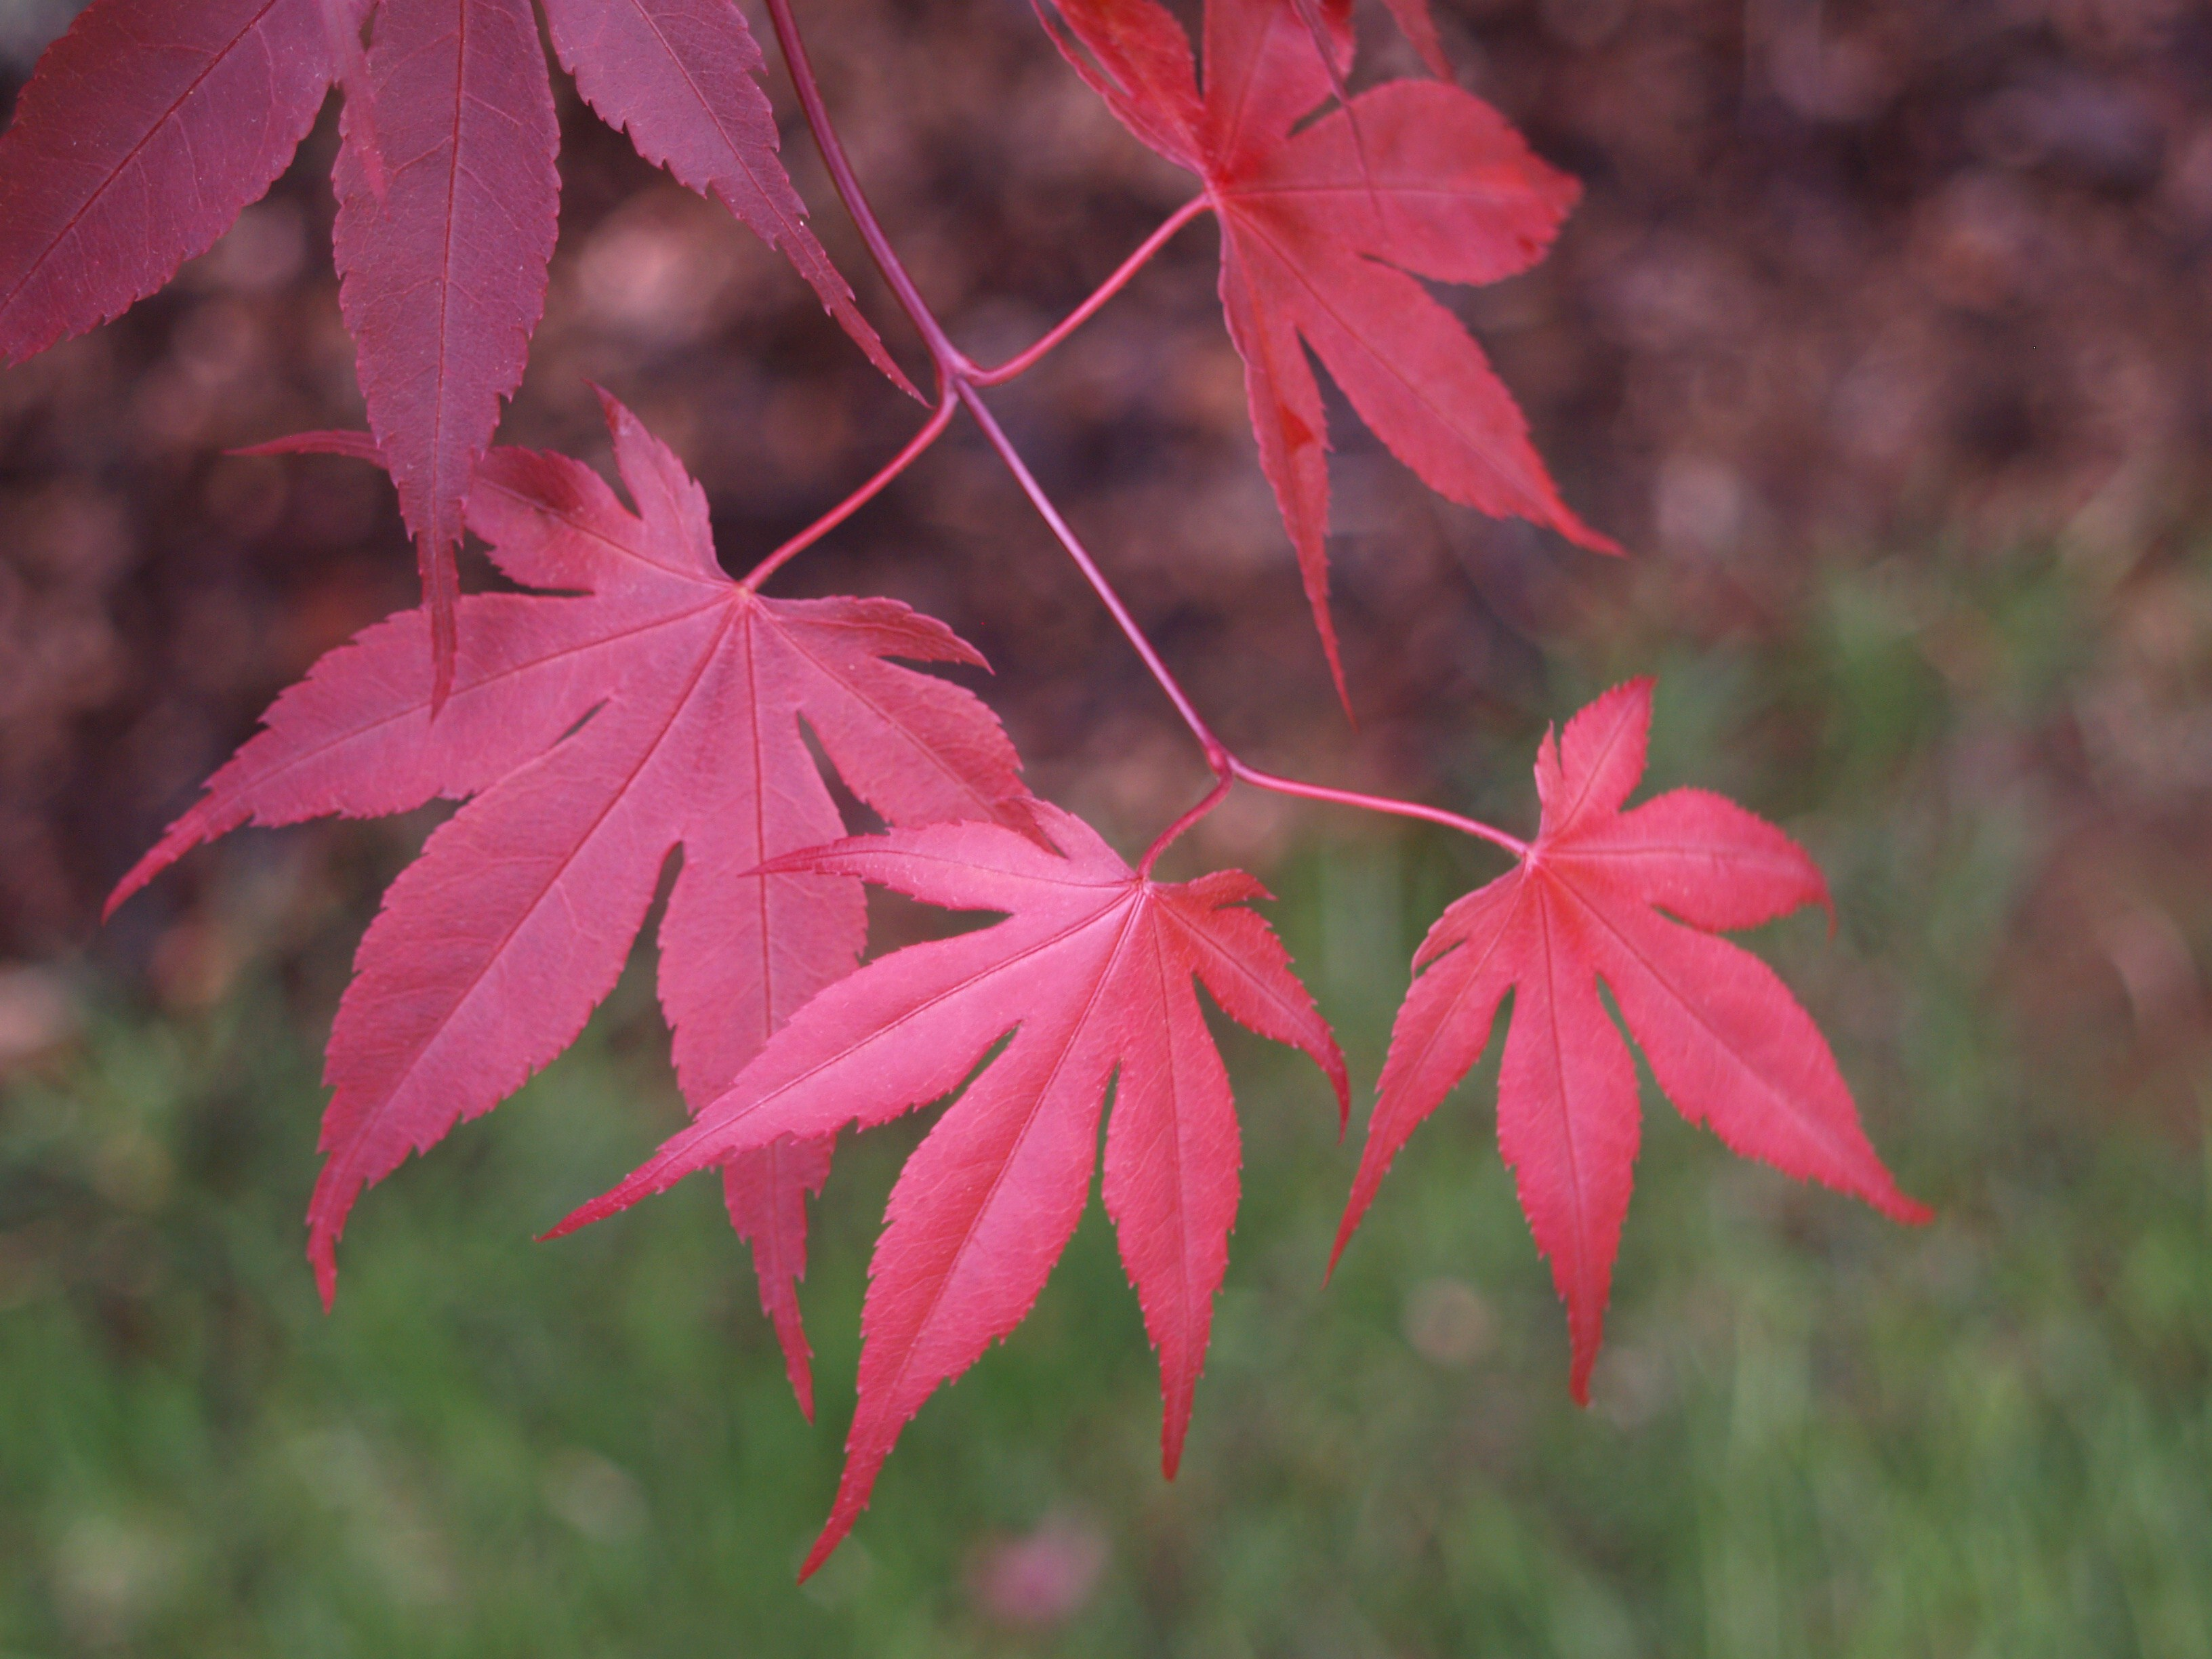 Japanese maples galore ramblin 39 through dave 39 s garden Japanese maple leaf